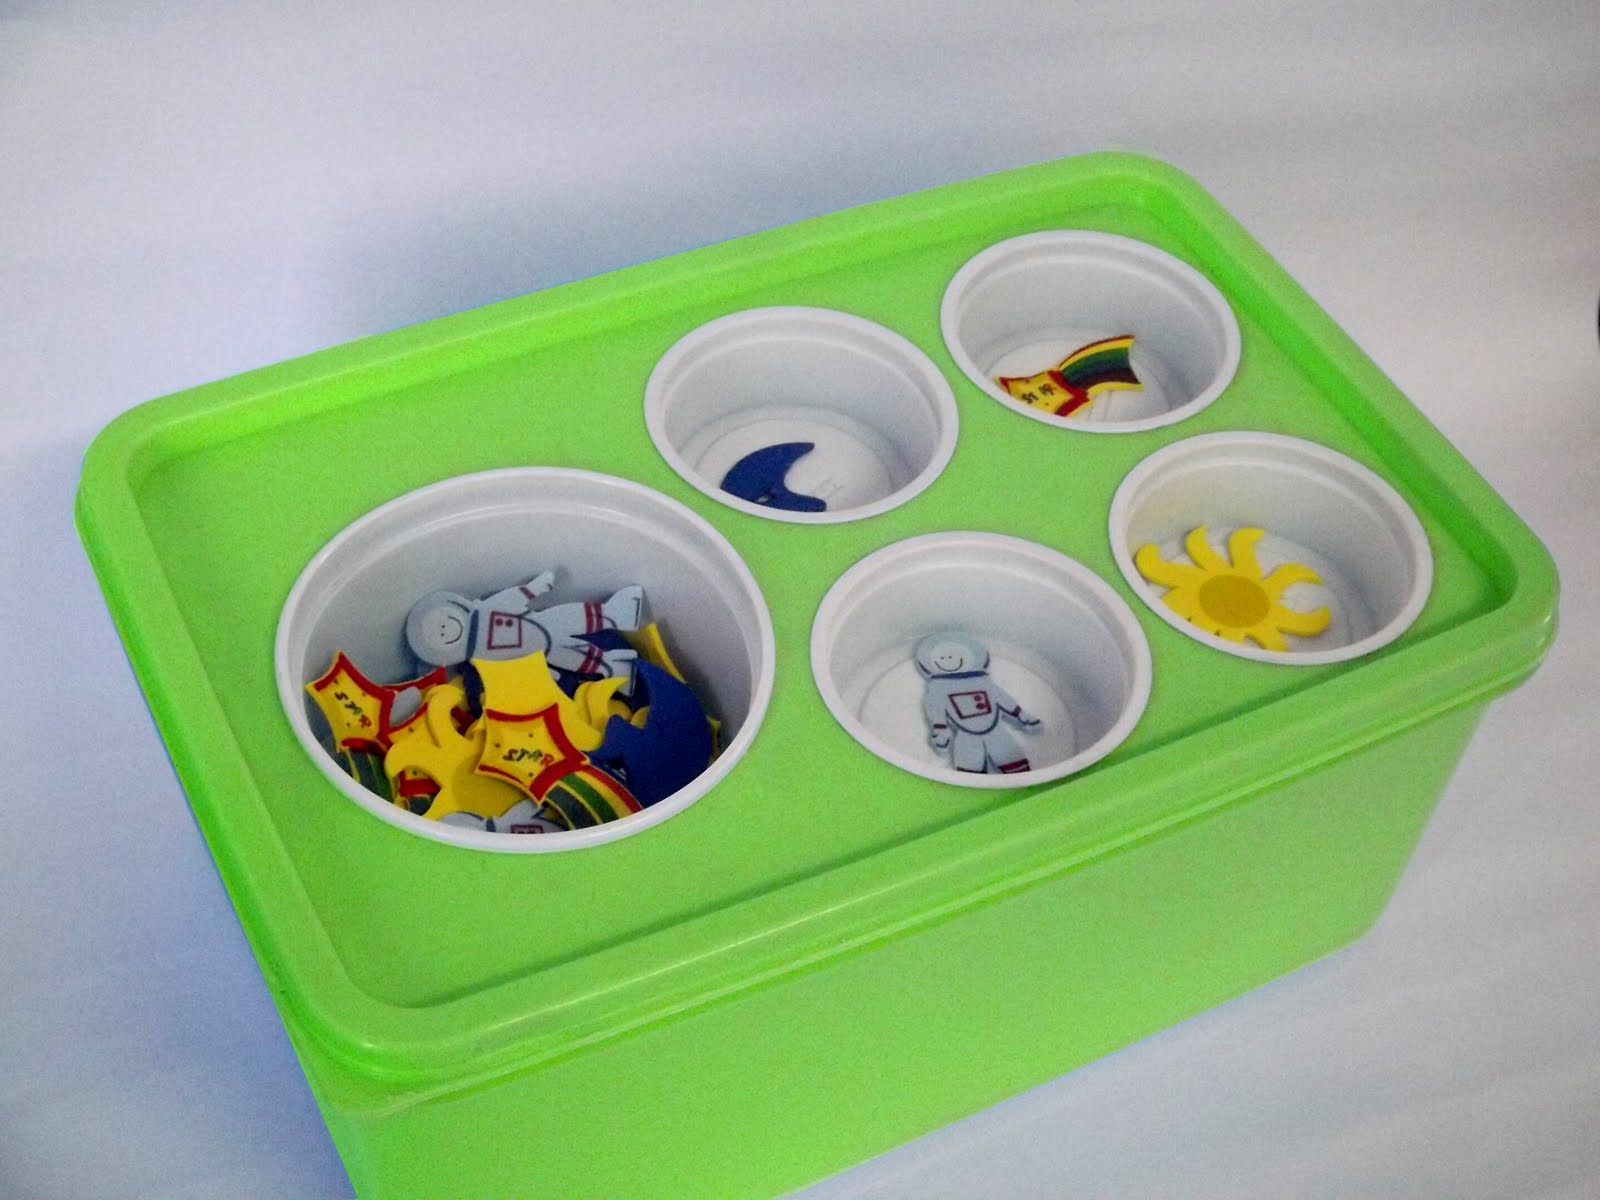 TEACCH Containers http://mylittlewarriorprincess.blogspot.com/2012/07/teacch-program-for-autism.html